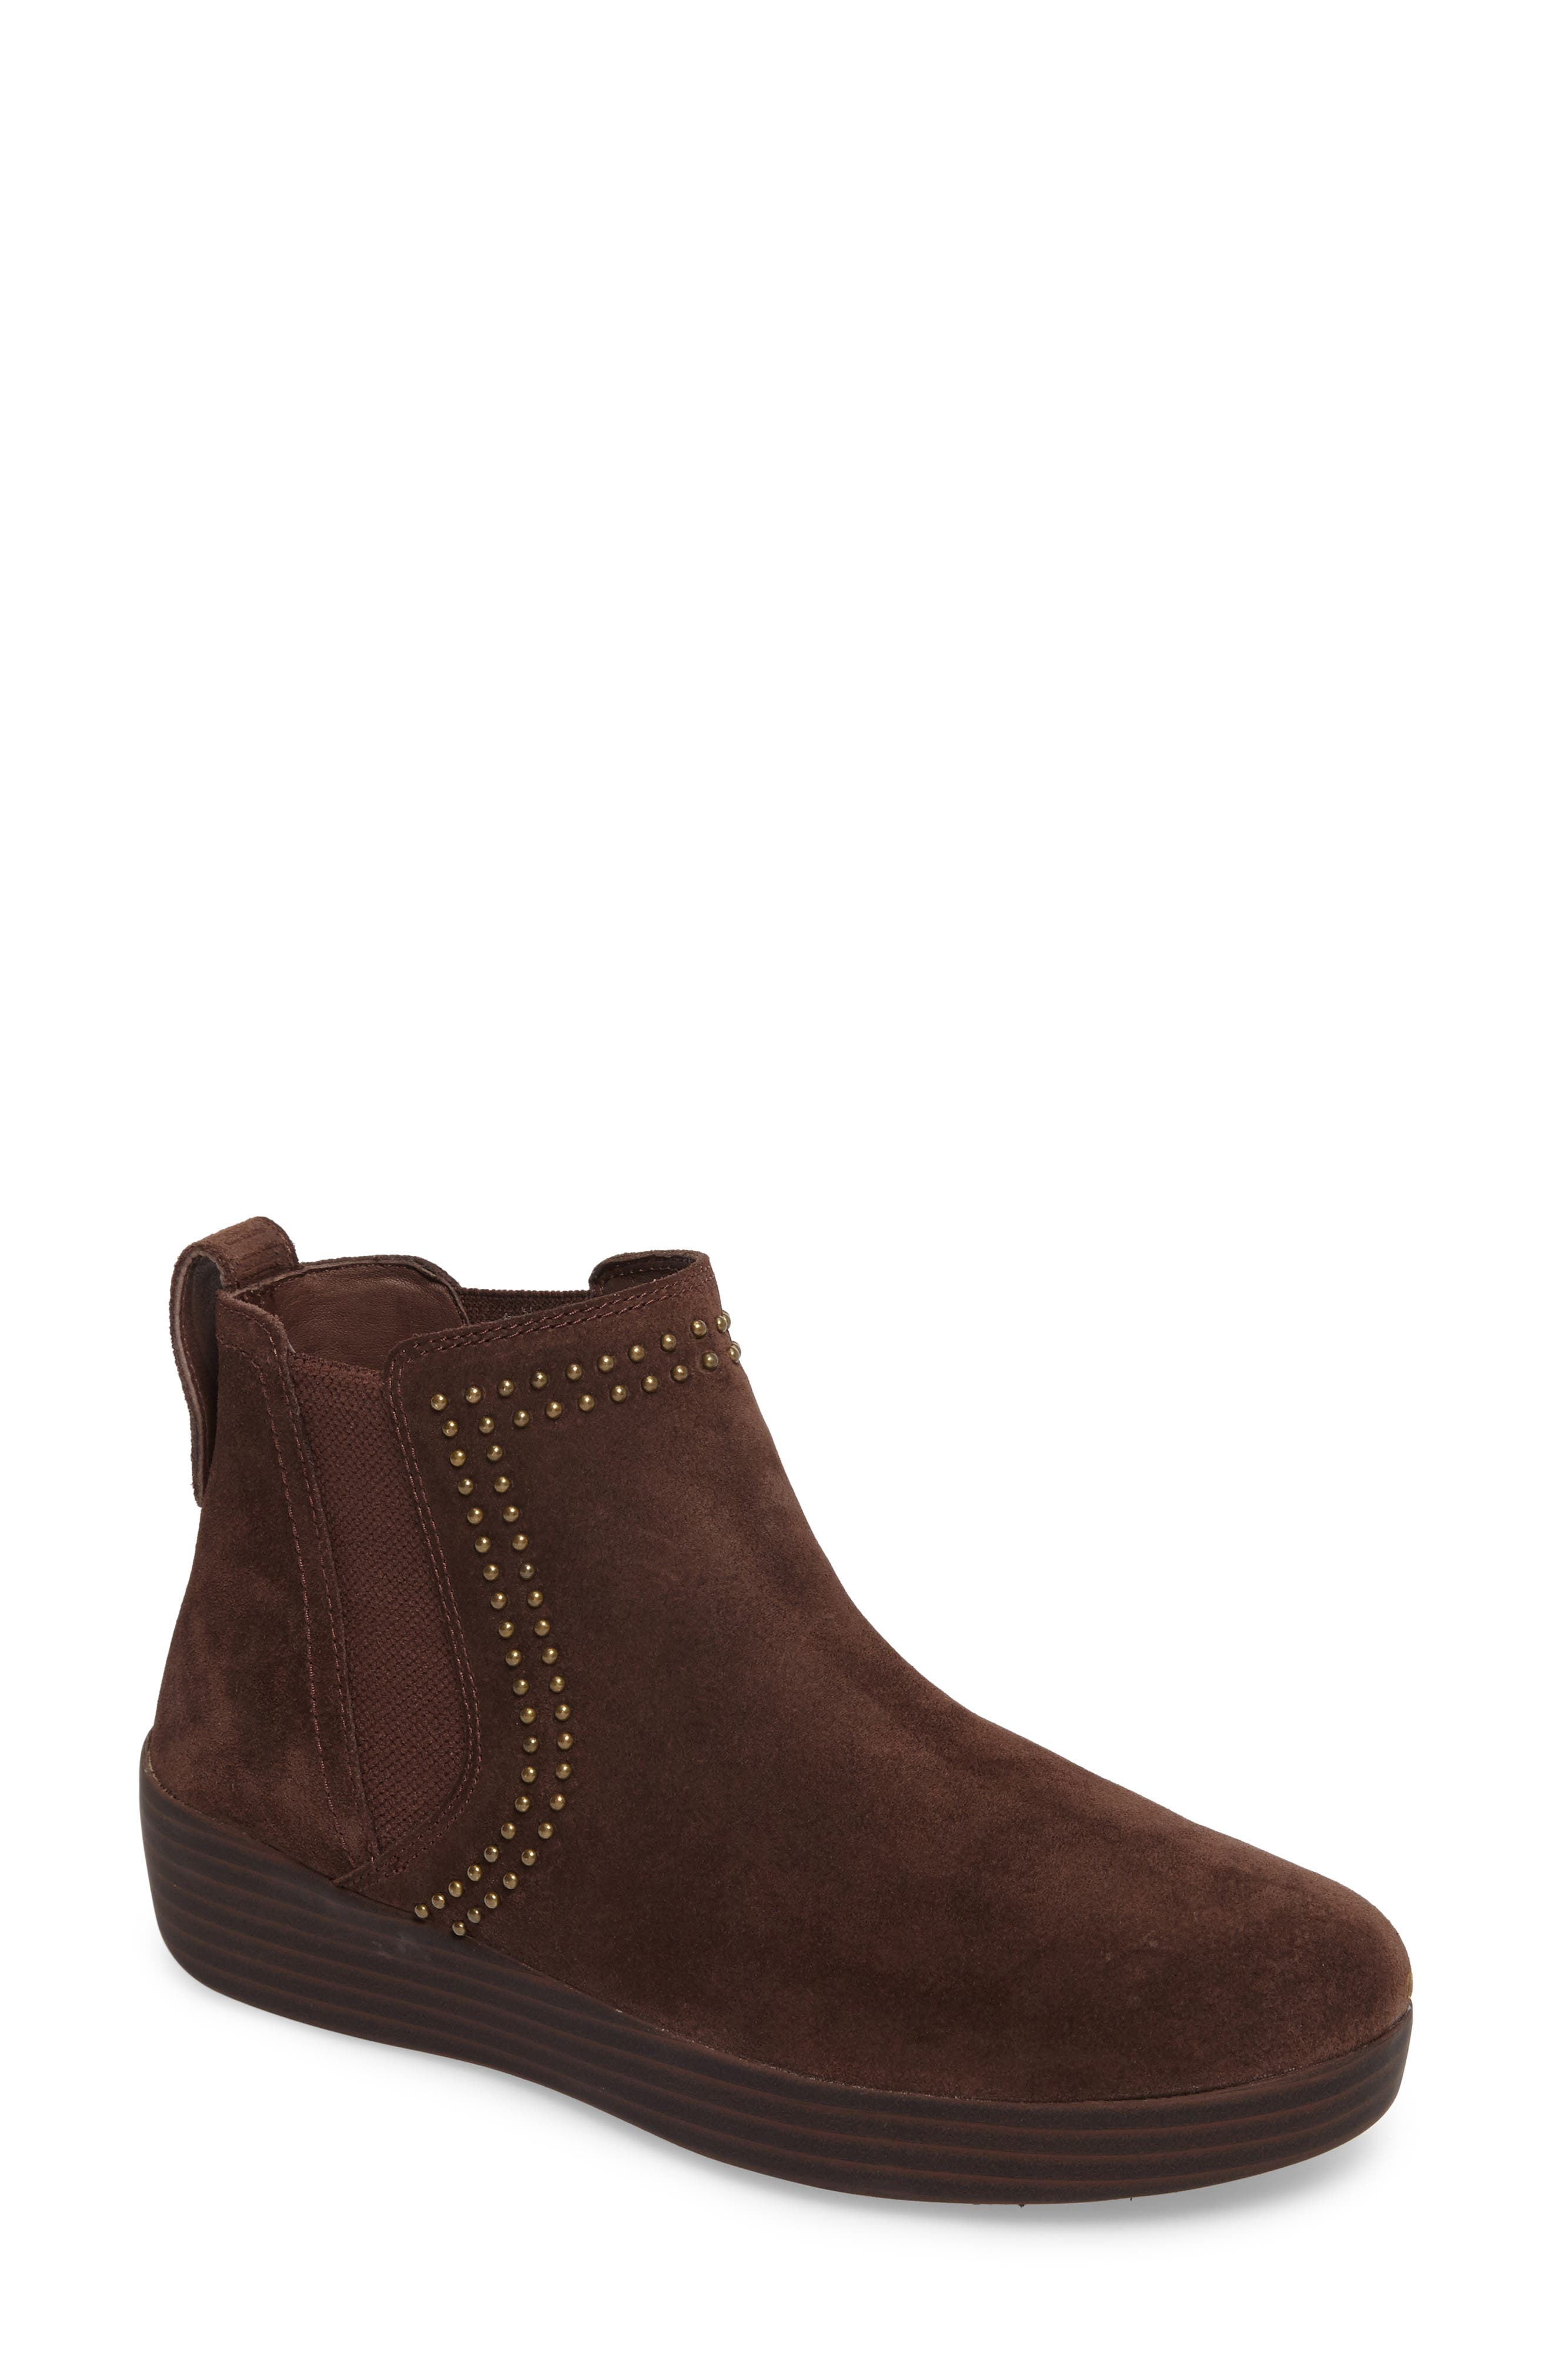 Main Image - FitFlop™ Superchelsea Studded Boot (Women)